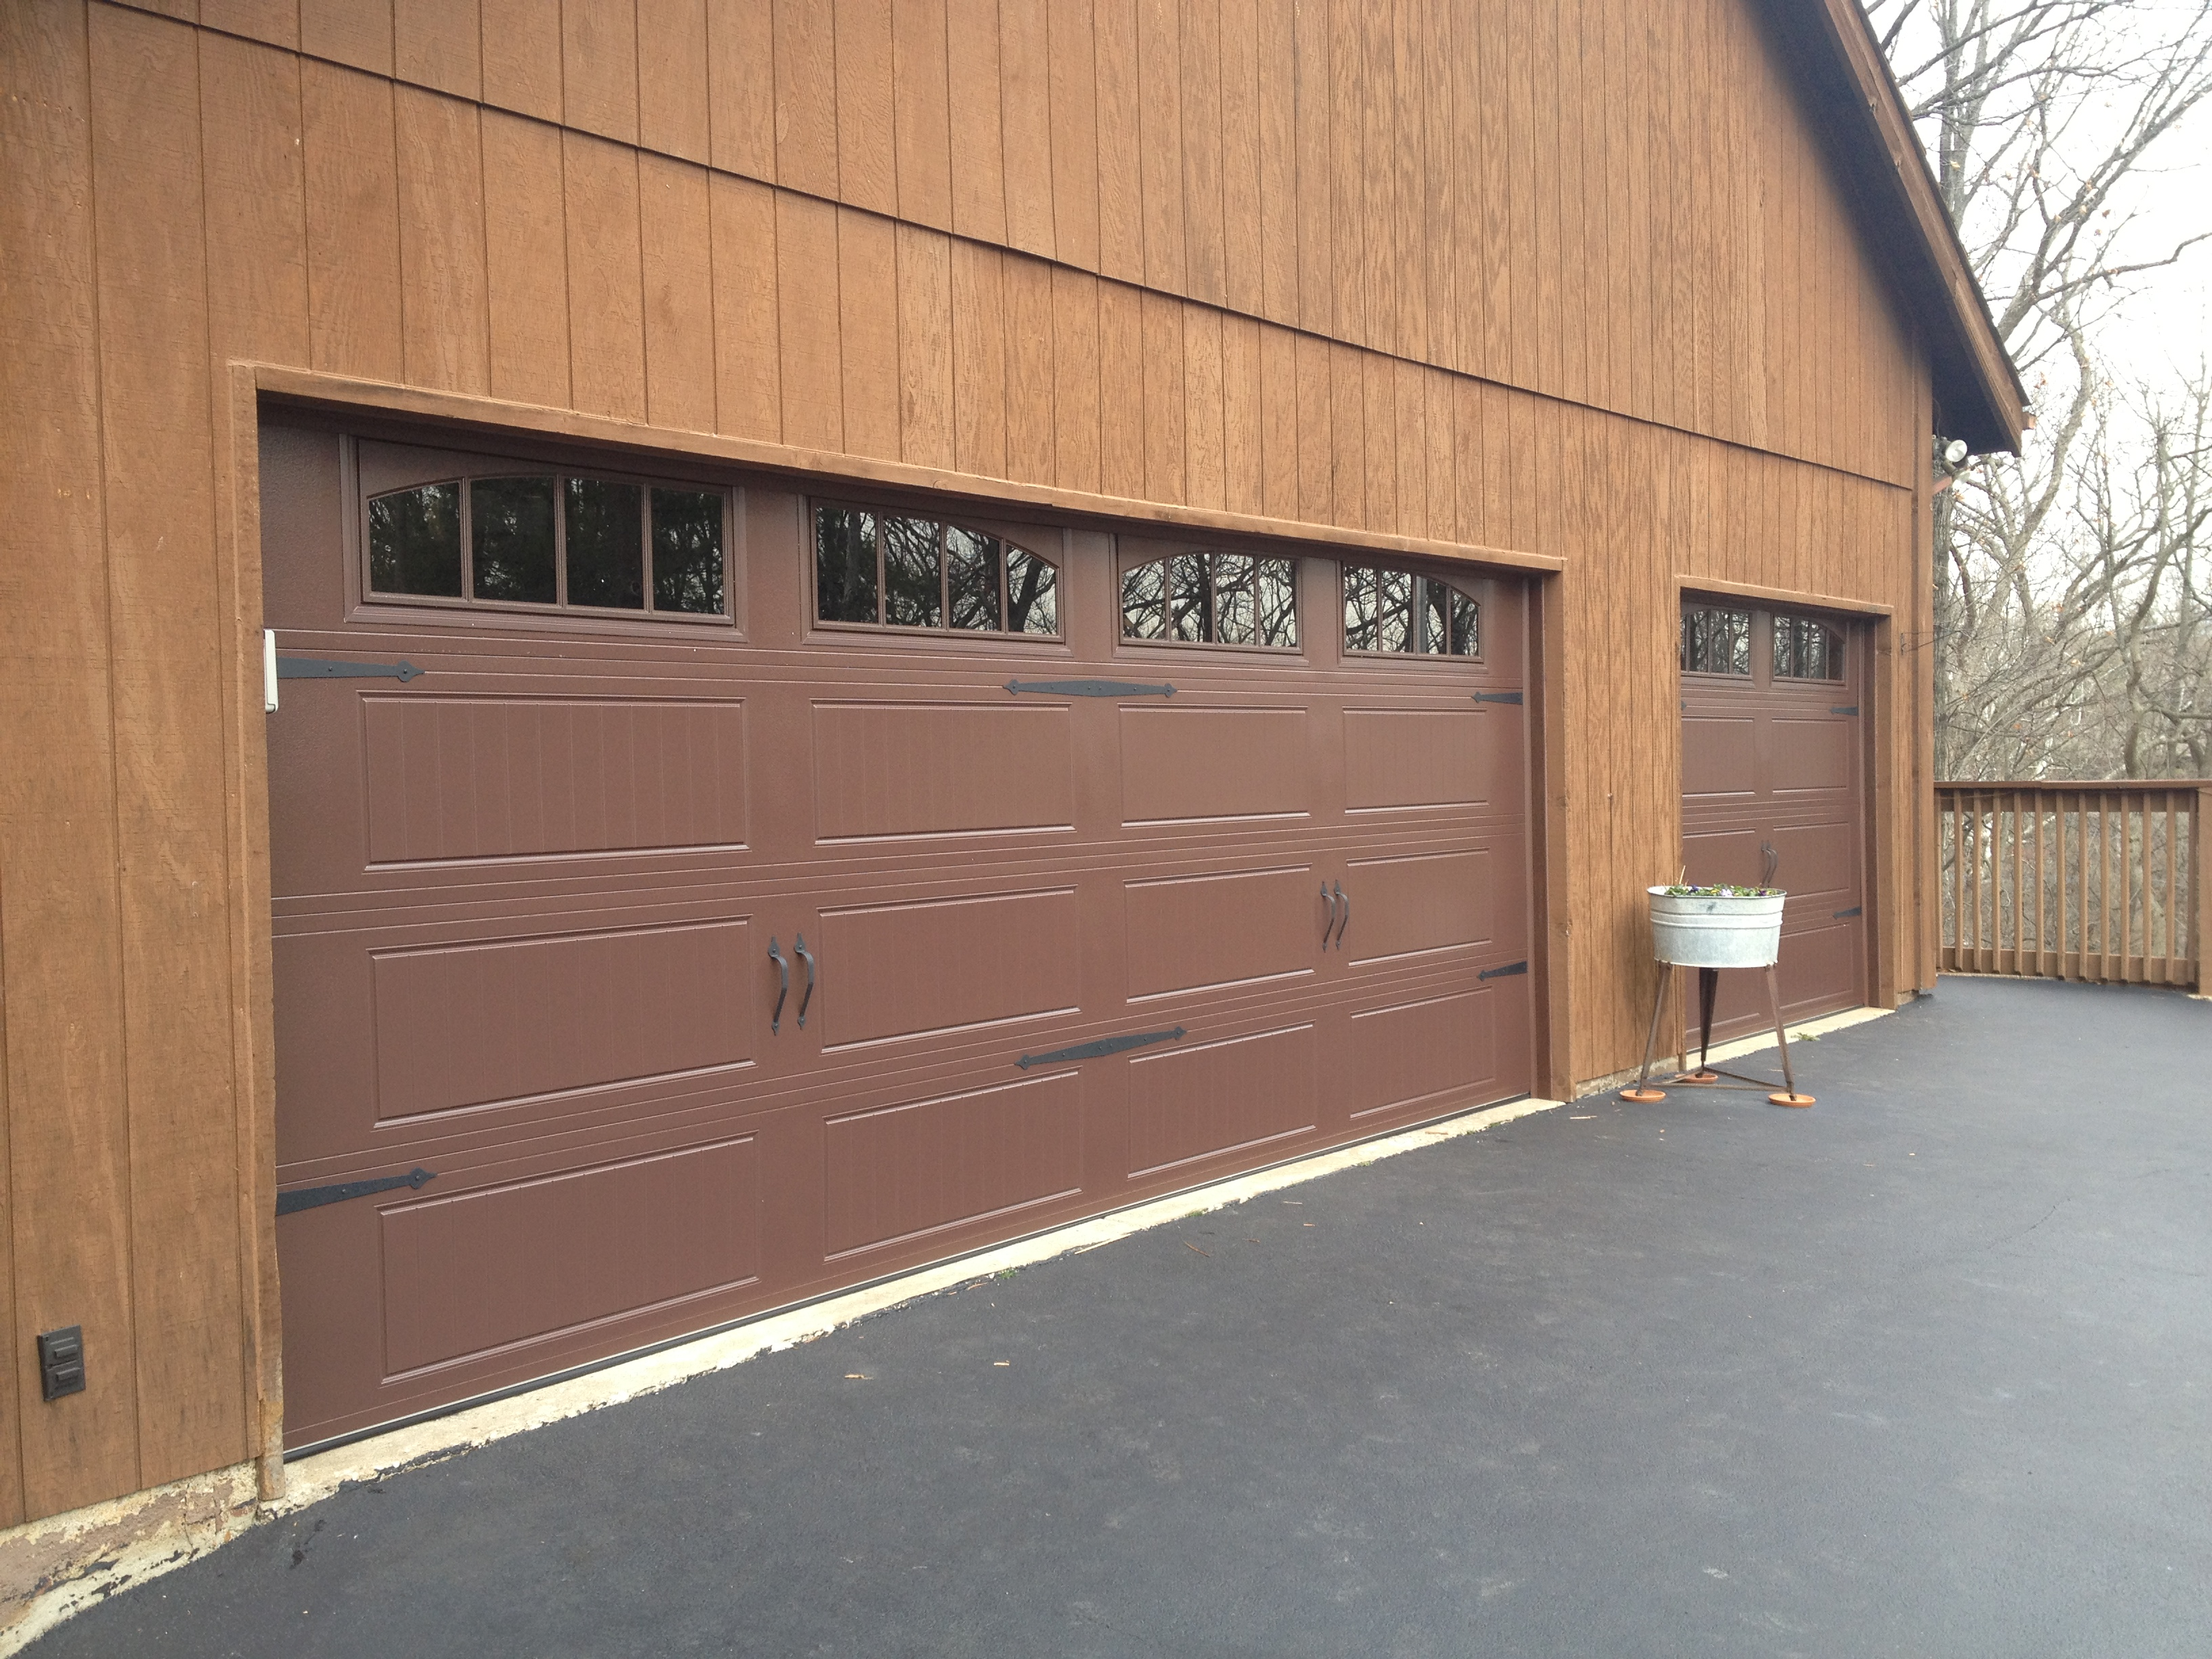 Garage Door Gallery  Cgx Overhead Door  St Louis Mo. Maple Cabinet Doors. Wayne Dalton Fiberglass Garage Doors. Solid Mahogany Doors. Garage Door Repair Valparaiso Indiana. Fiberglass Interior Doors. Sheds And Garages. Fiberglass French Patio Doors With Blinds. Overhead Door Model 456